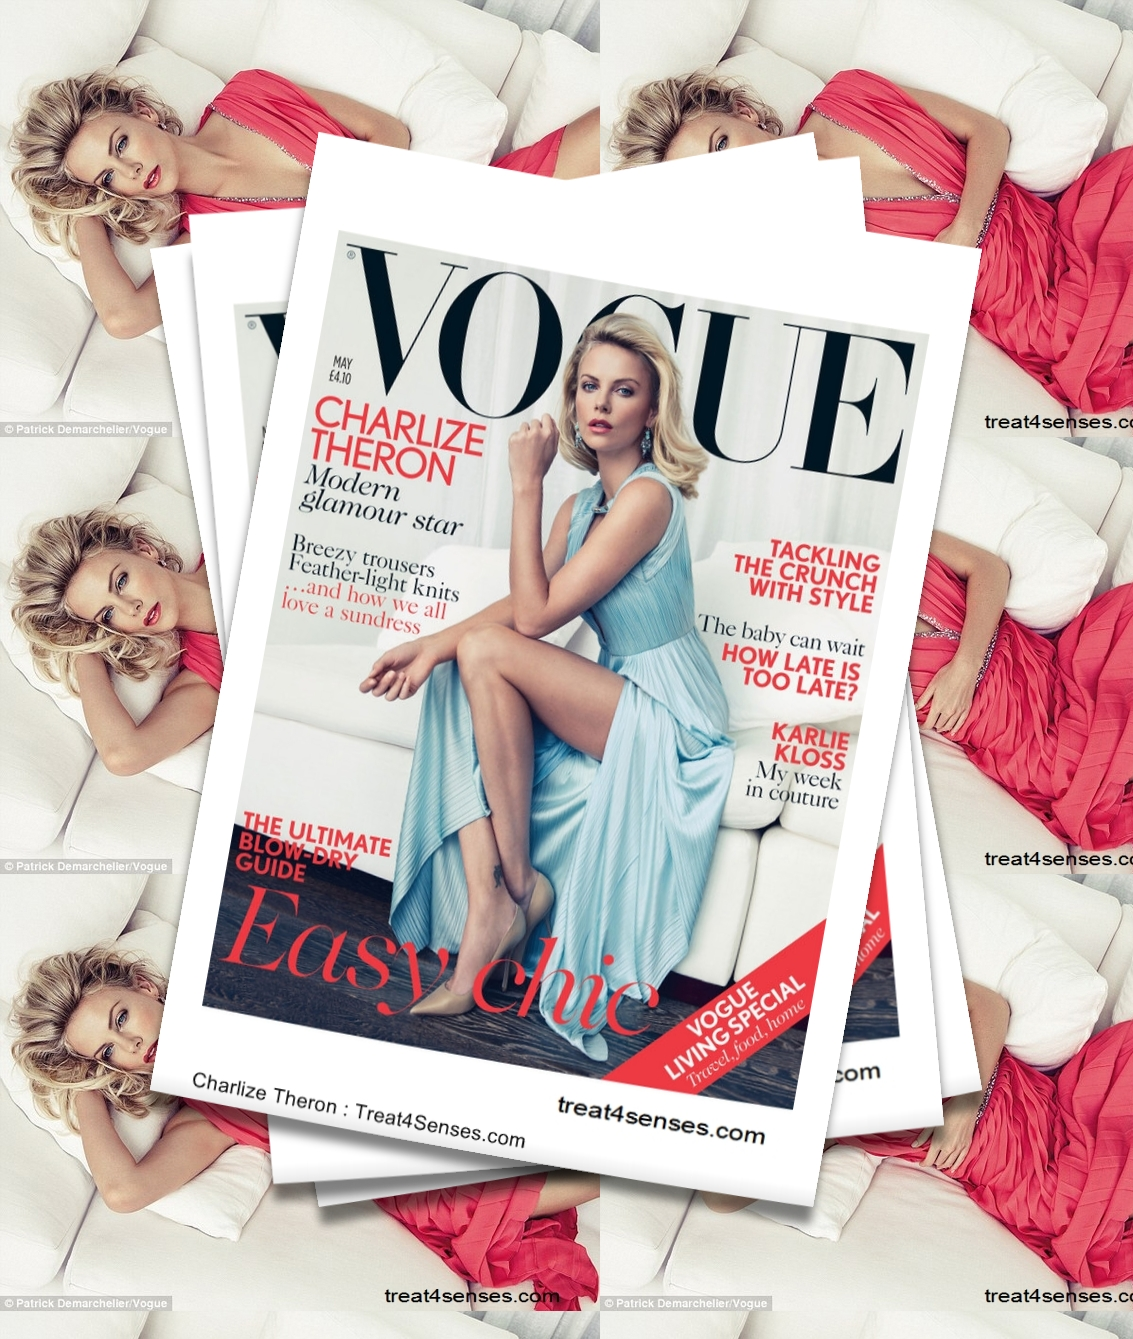 http://4.bp.blogspot.com/-PKznhHY385Q/T4TiUFiEjHI/AAAAAAAAGJg/OhdqMCz1fBg/s1600/charlize-theron-vogue-uk-may-2012-treat4senses.jpg